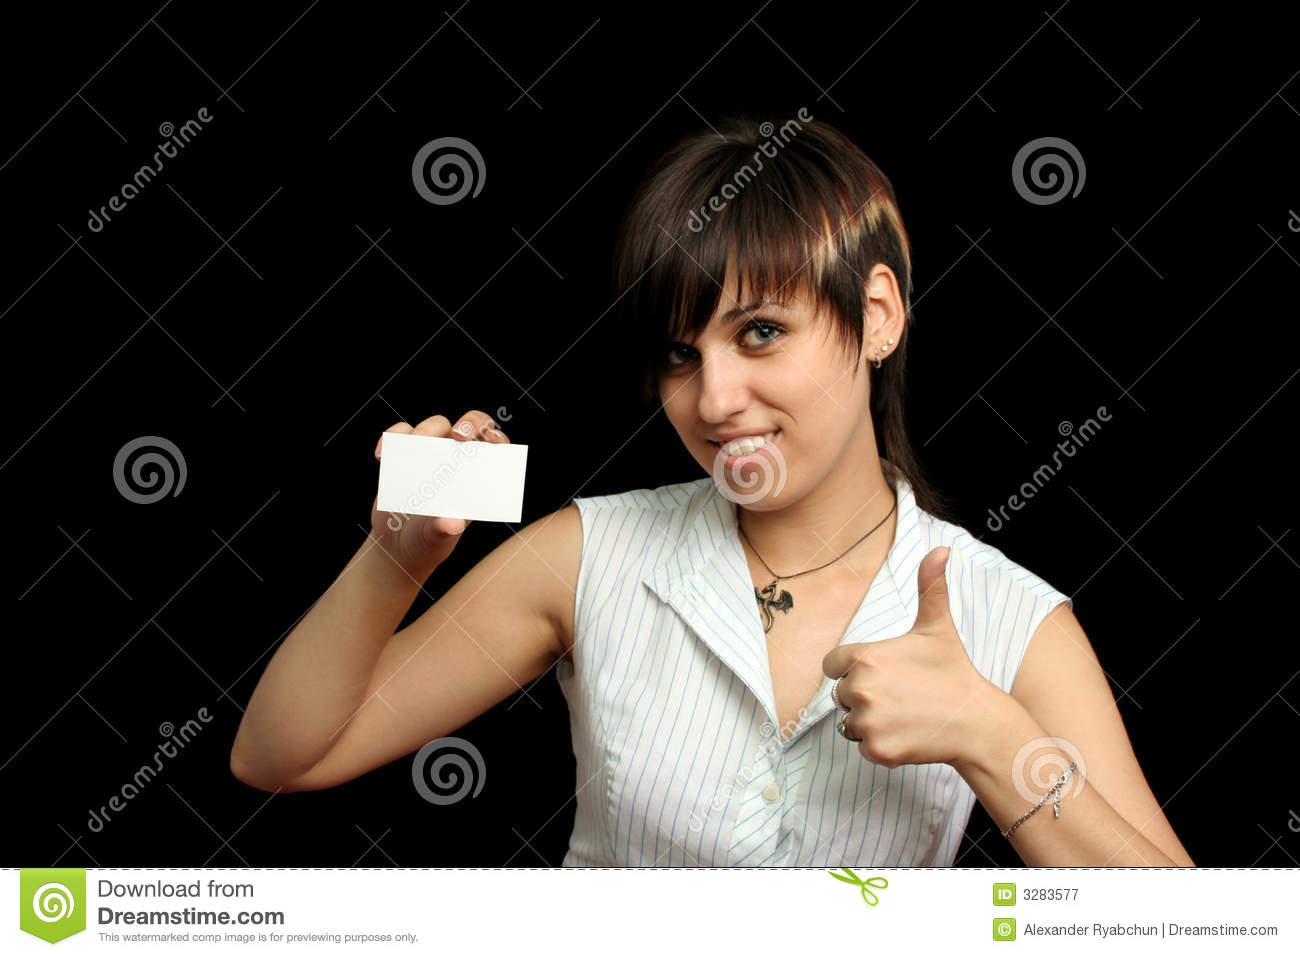 Girl with card and OK